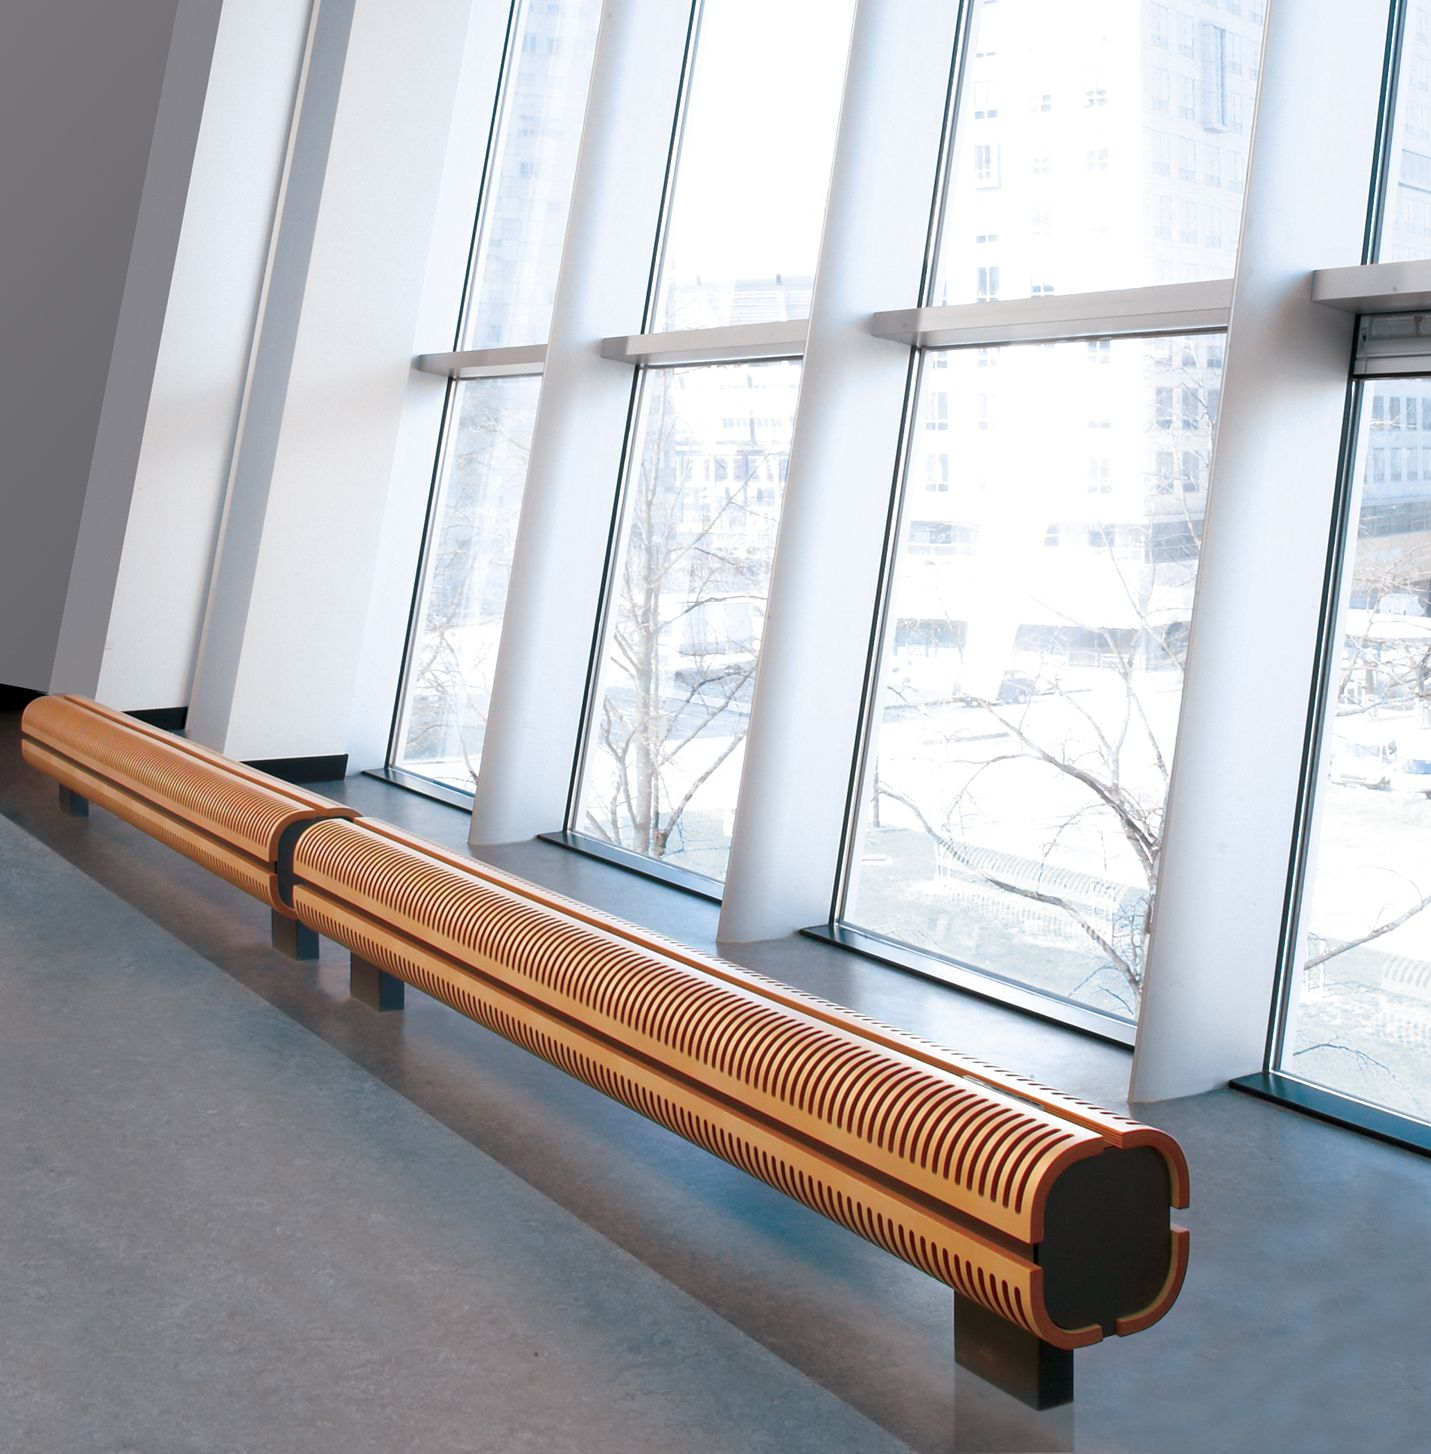 Knockonwood Freestanding Radiator By Jaga An Ideal Solution For Any